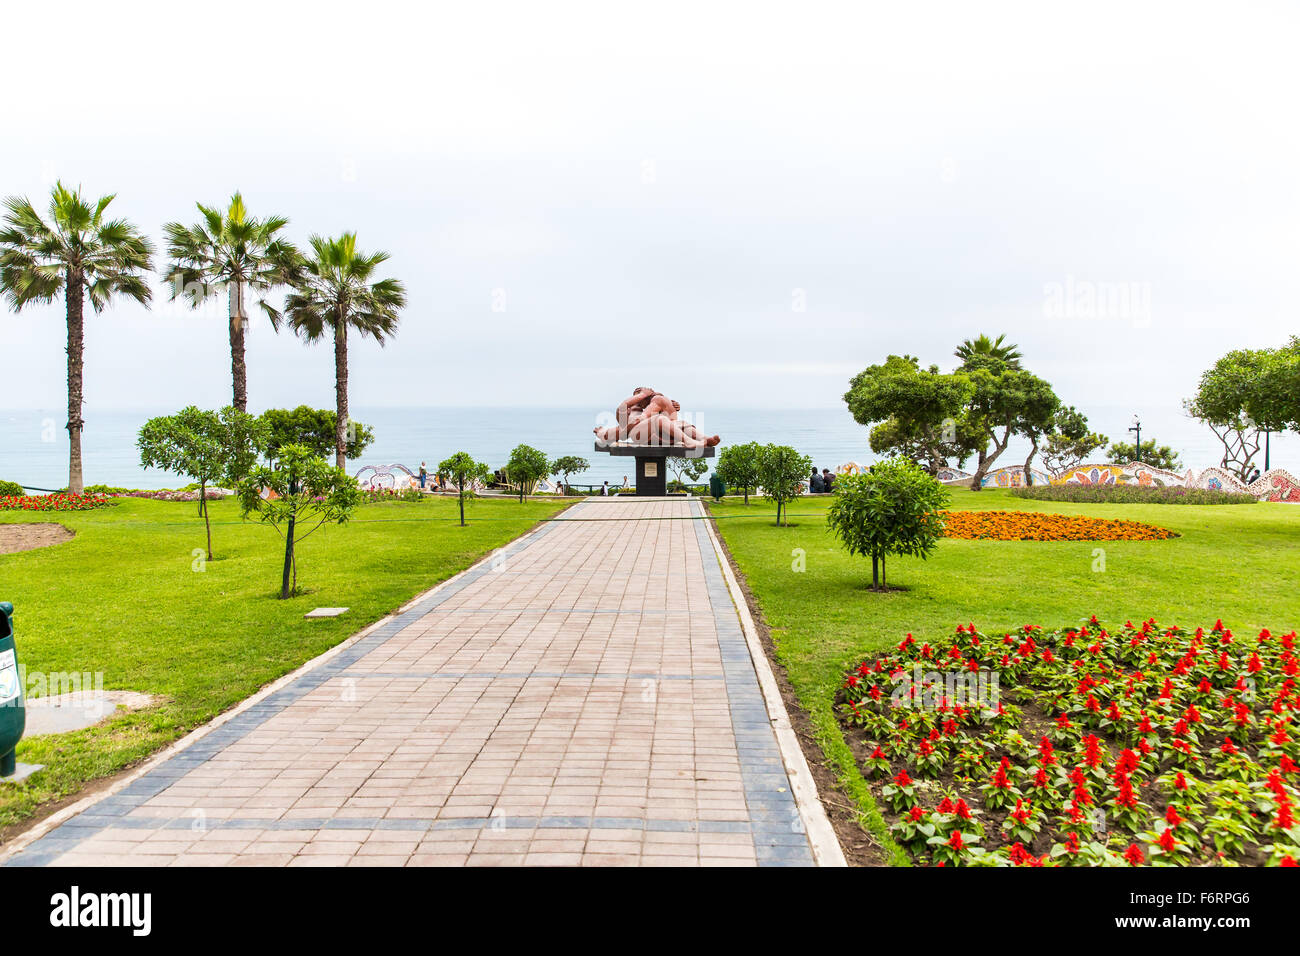 Upscale hotel and Inviting Courtyard and garden on lake Titikaka, Peru in South America Stock Photo